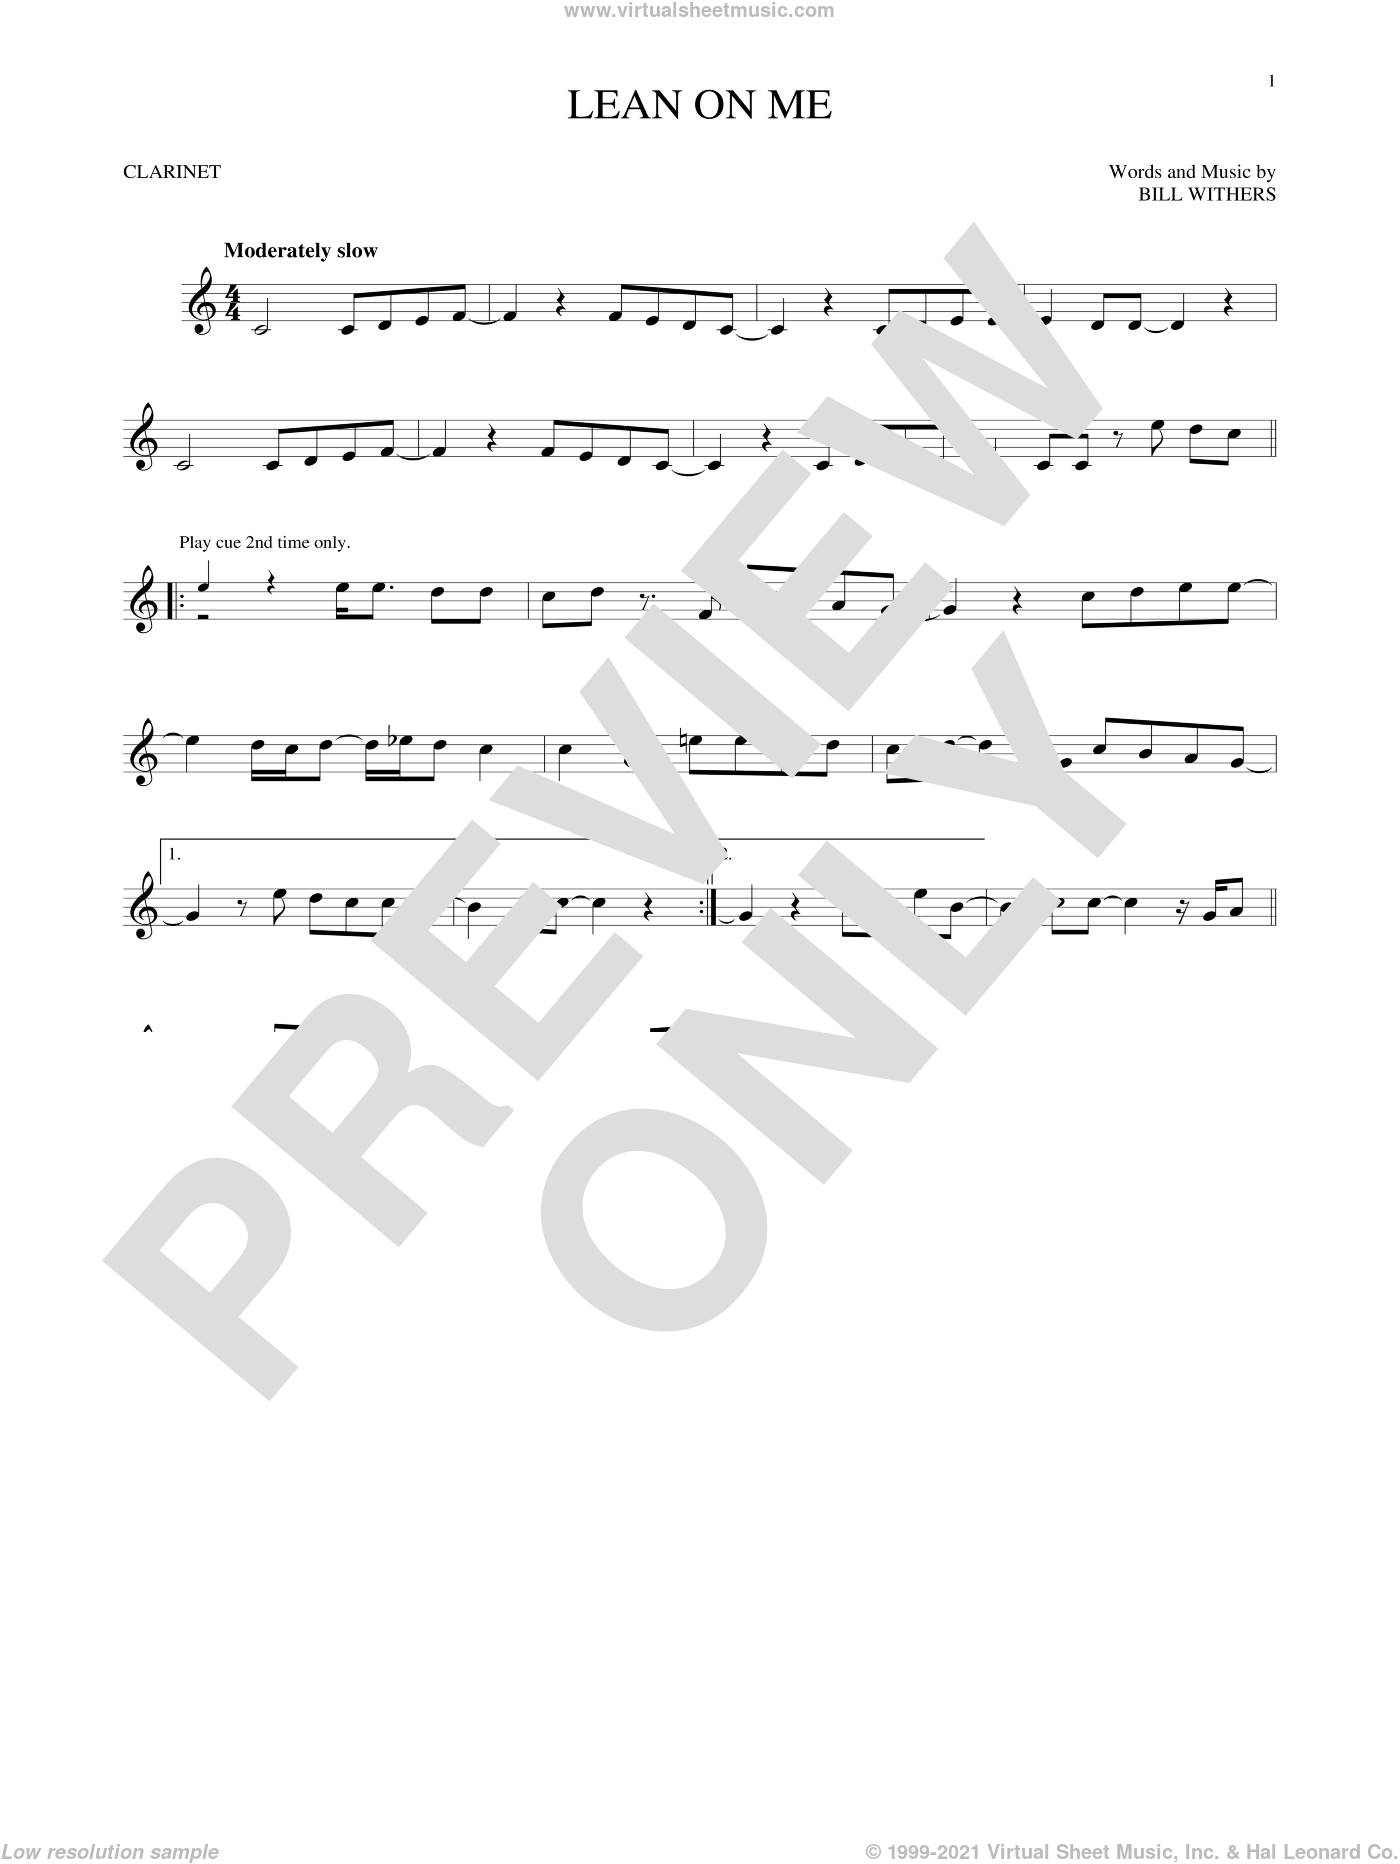 Lean On Me sheet music for clarinet solo by Bill Withers, intermediate skill level